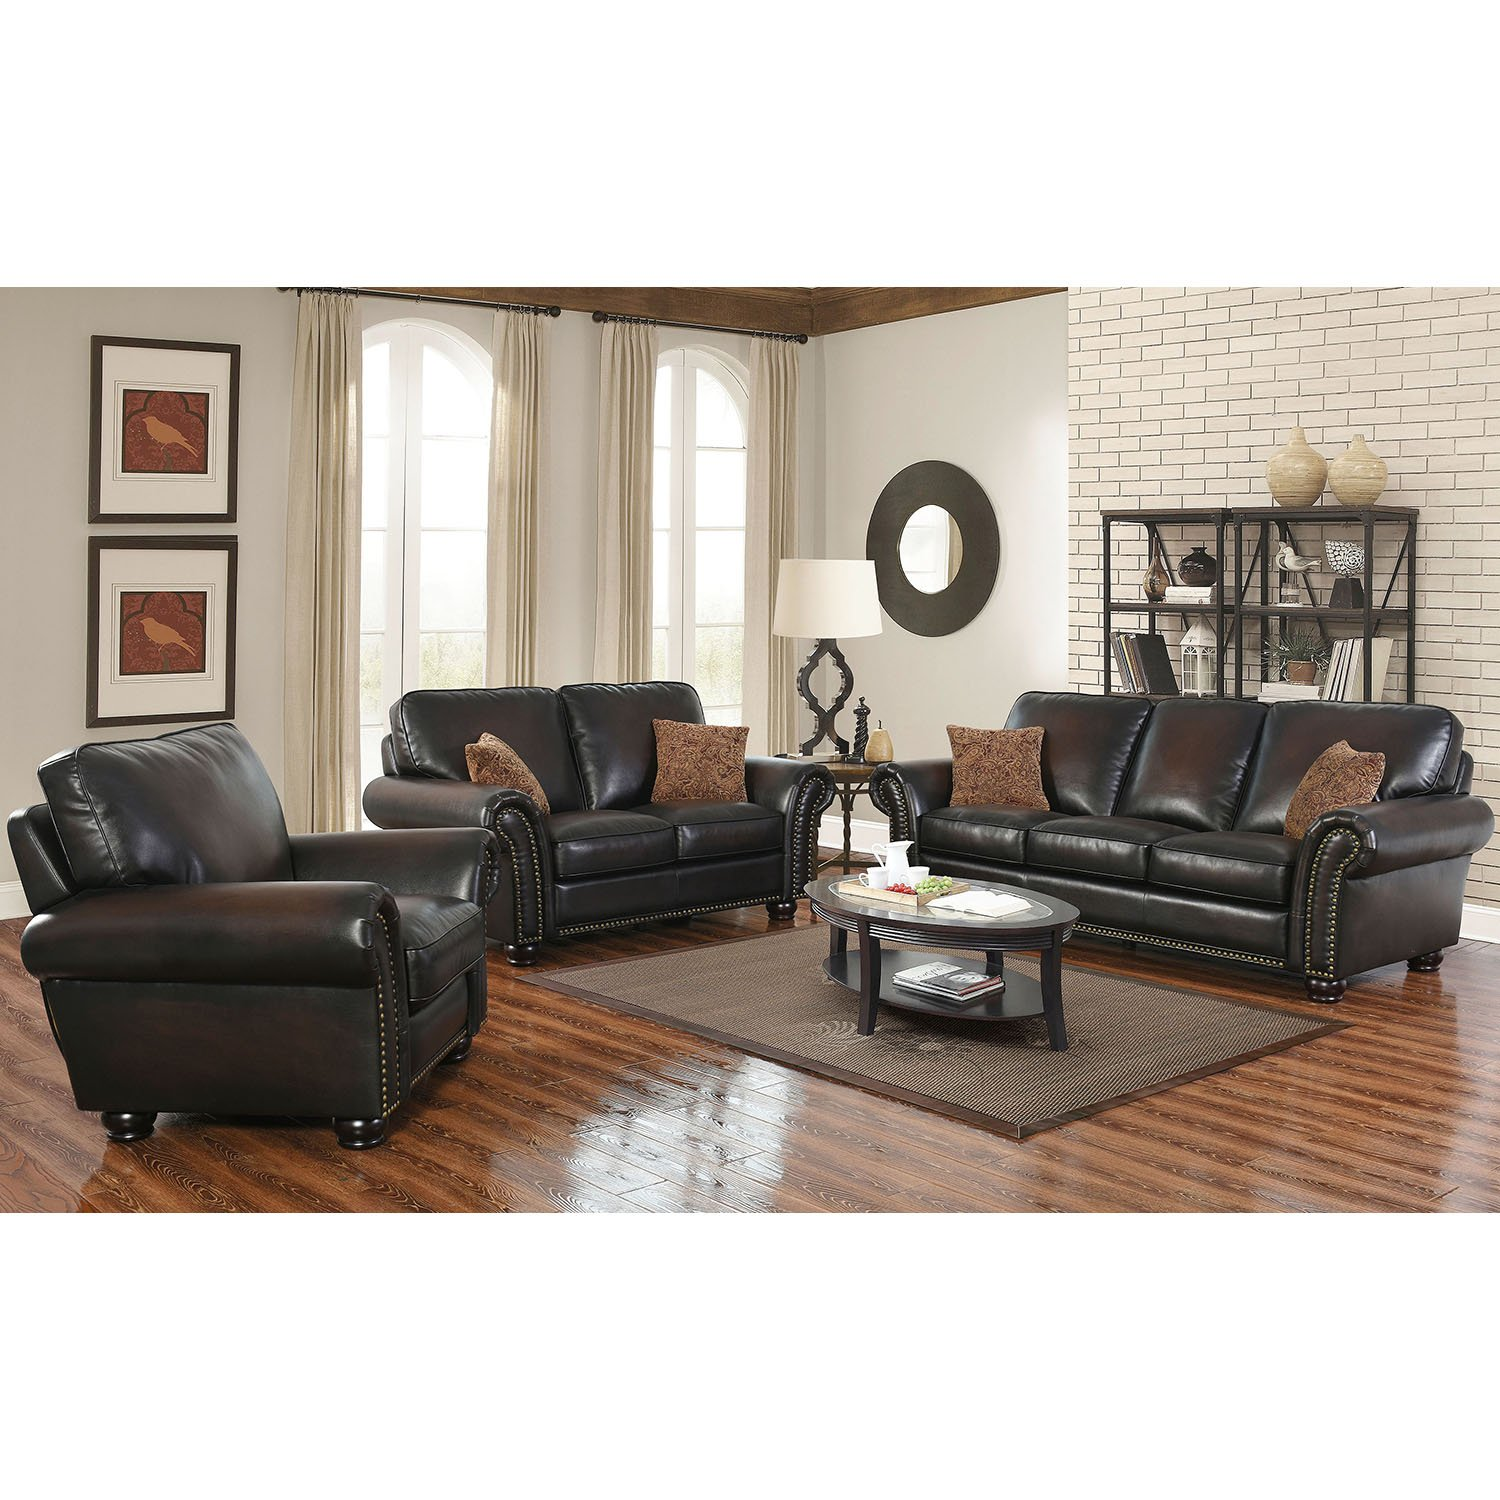 Outstanding Details About Abbyson Rubbed Leather Sofa Love Seat Recliner Set Western Rustic Nailhead Trim Caraccident5 Cool Chair Designs And Ideas Caraccident5Info